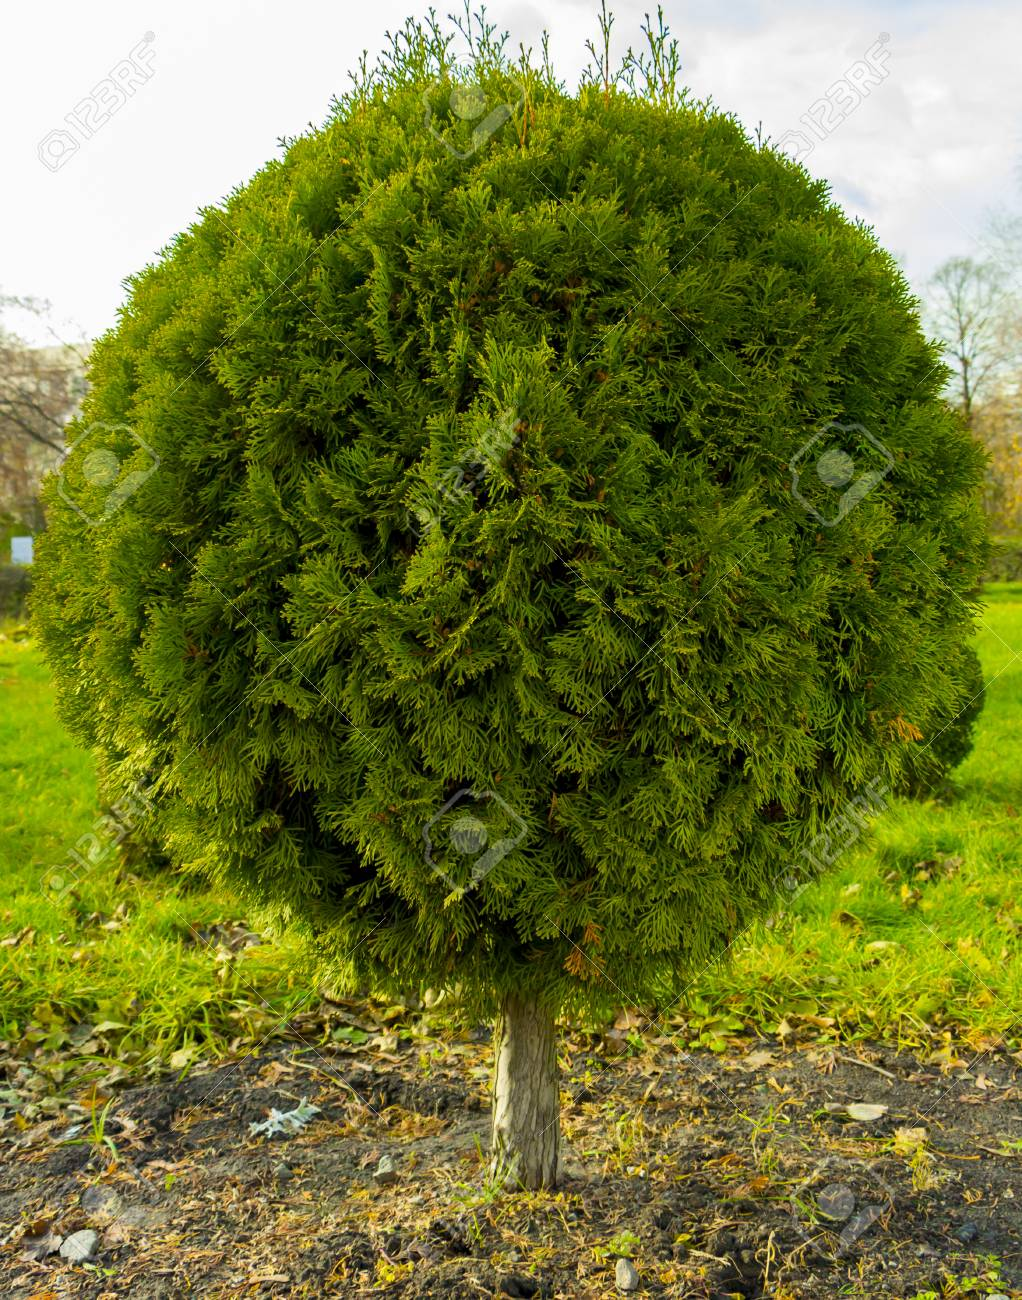 Application Of Globular Shredded Thuja In A Landscape Design Stock Photo Picture And Royalty Free Image Image 90737053